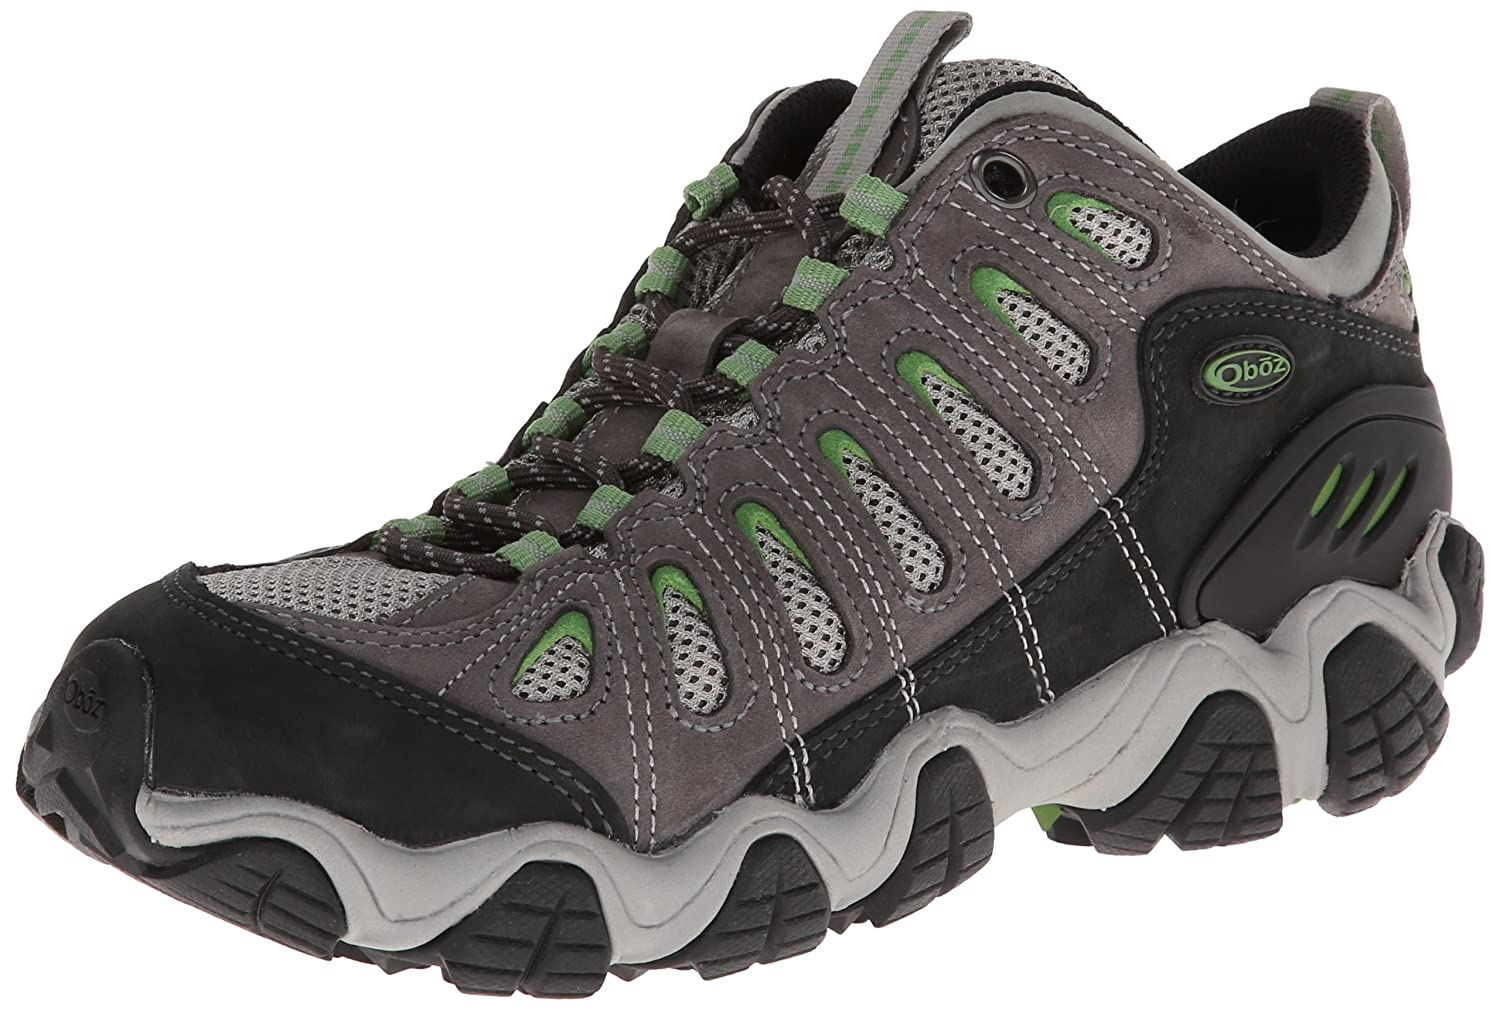 Oboz Women's Sawtooth Low Hiking Shoe B00GHM817O 8 B(M) US|Clover